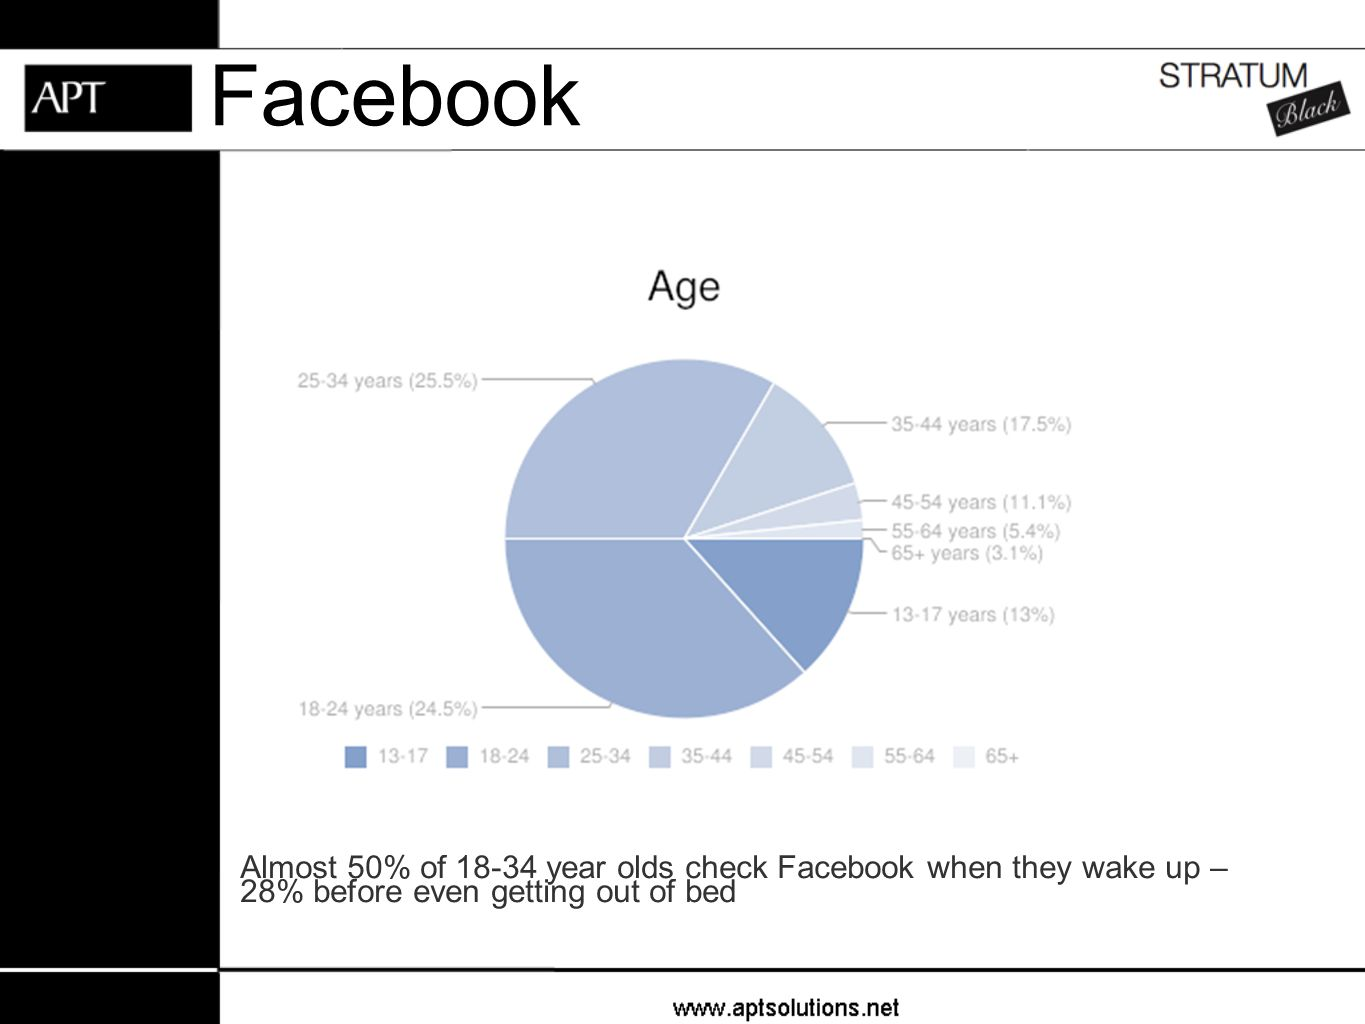 Facebook Almost 50% of 18-34 year olds check Facebook when they wake up – 28% before even getting out of bed